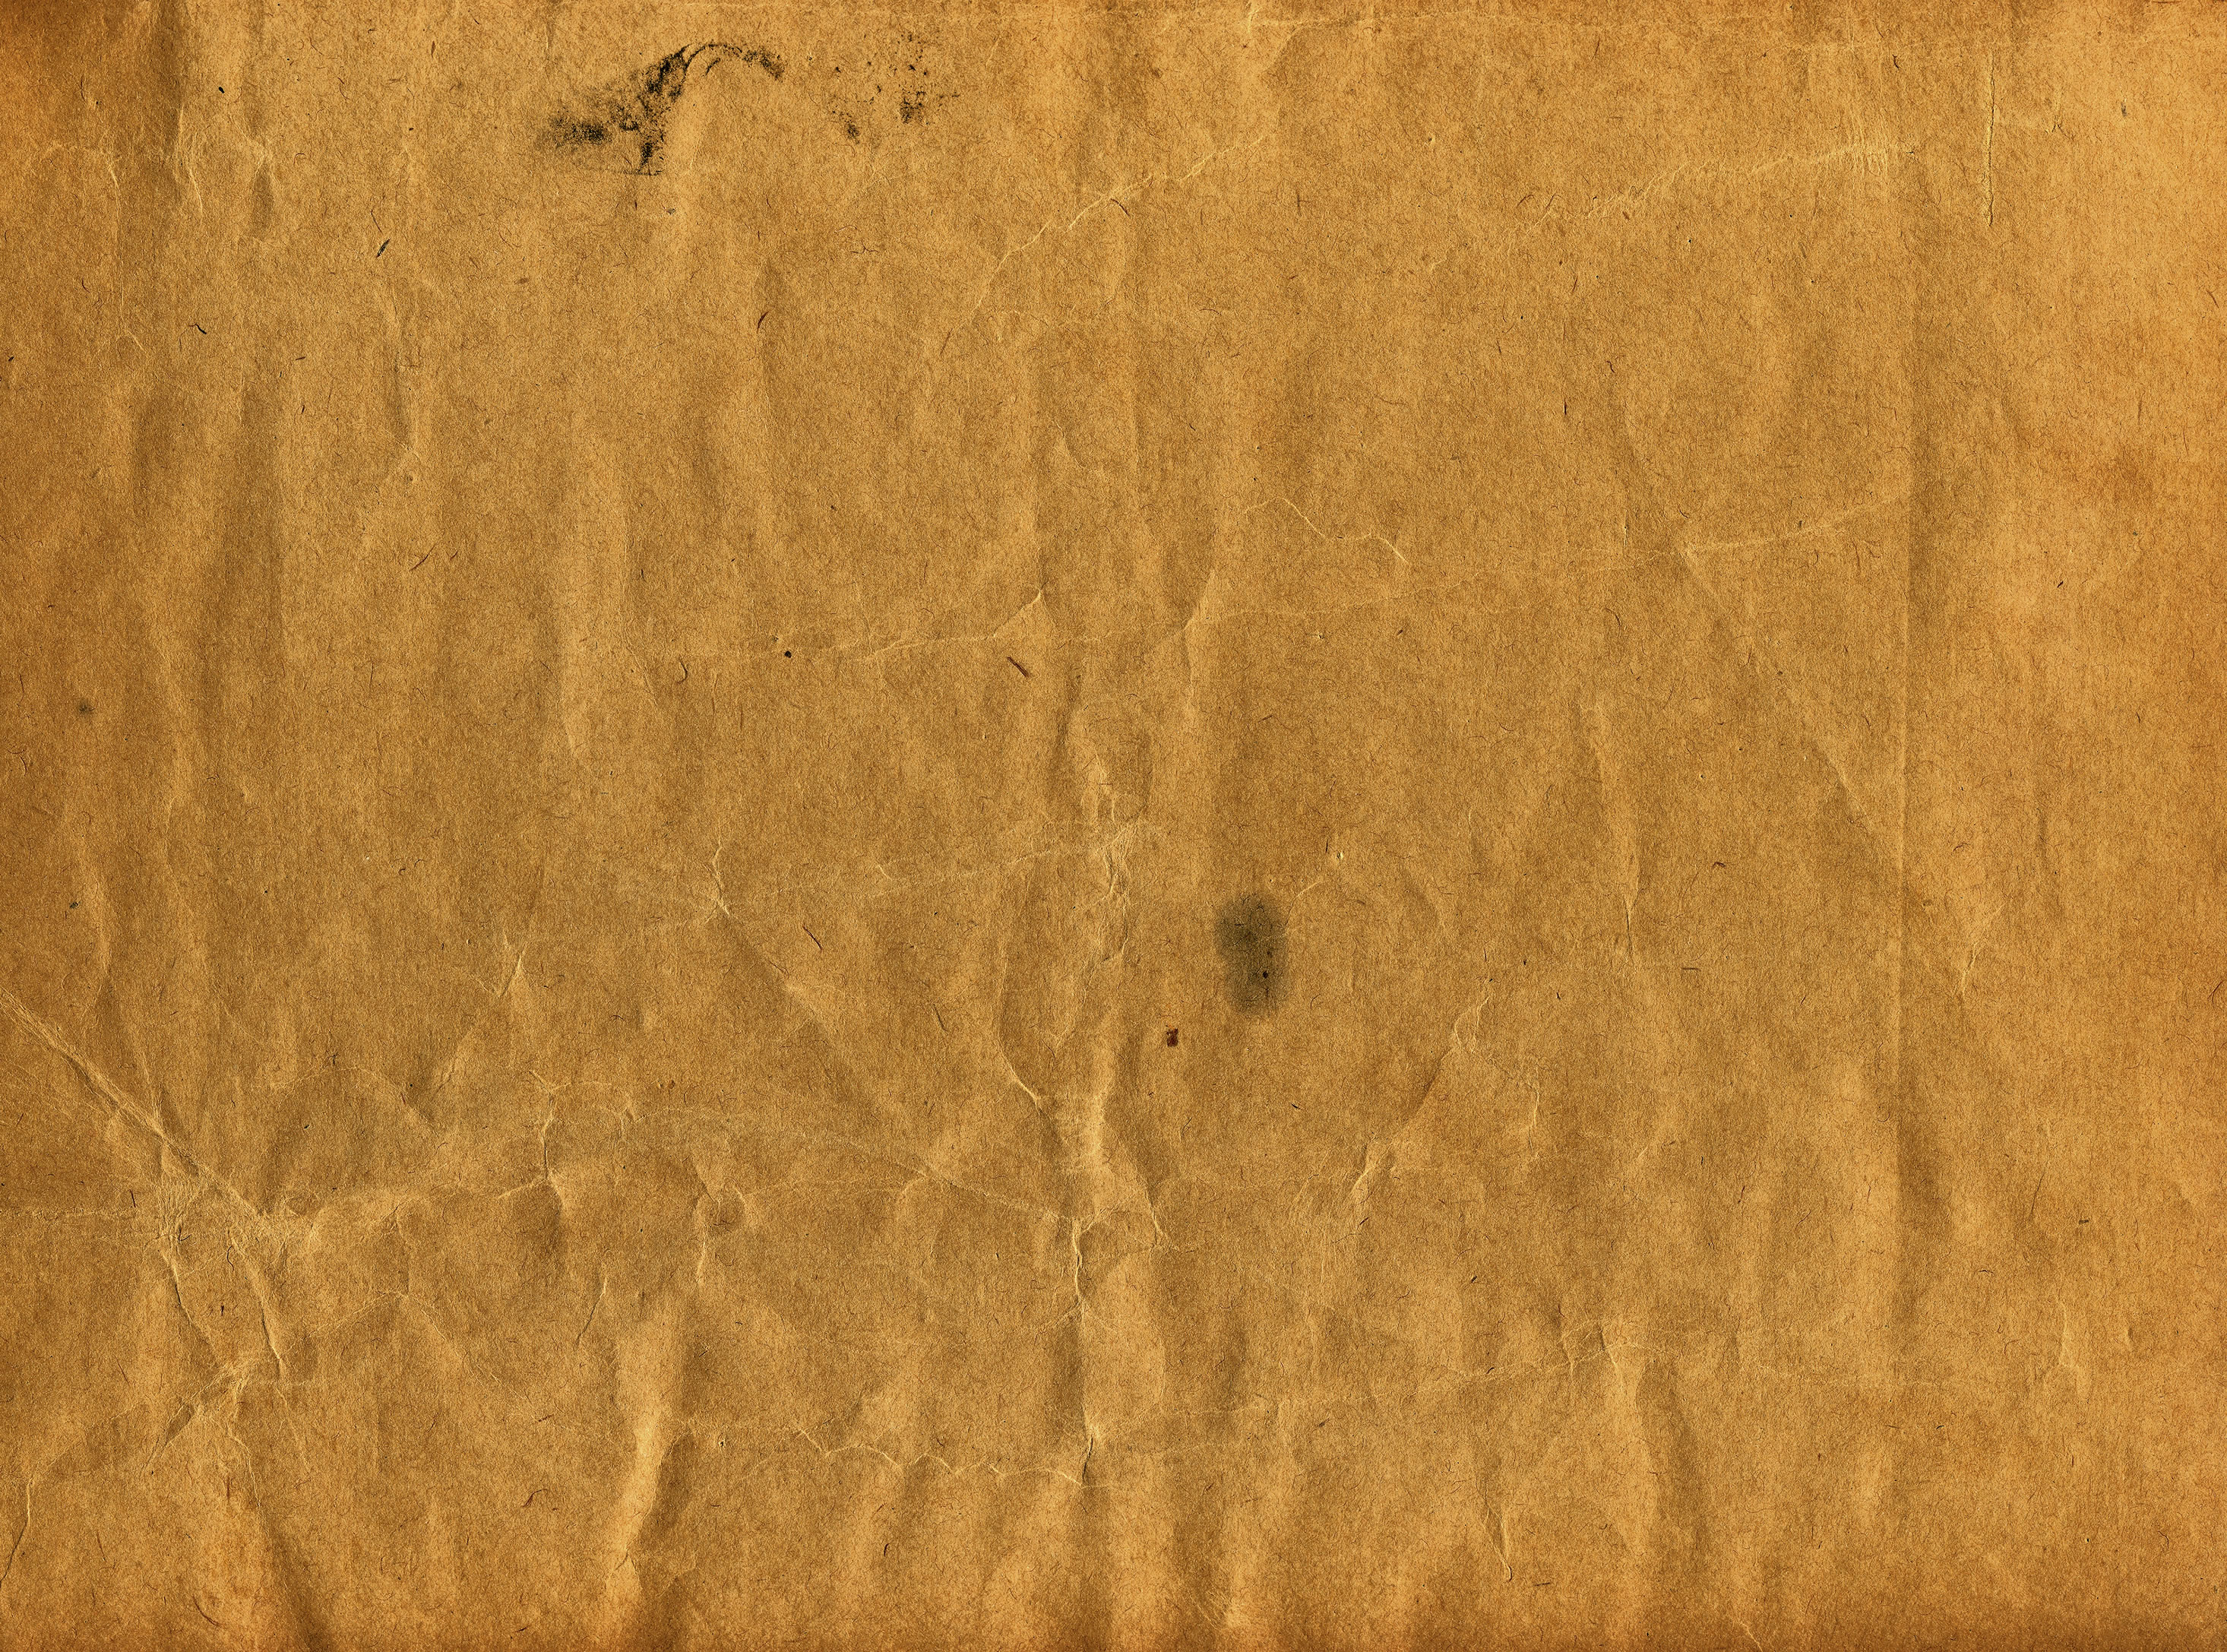 texture  old brown paper  download photo  background  old paper    Brown Paper Texture